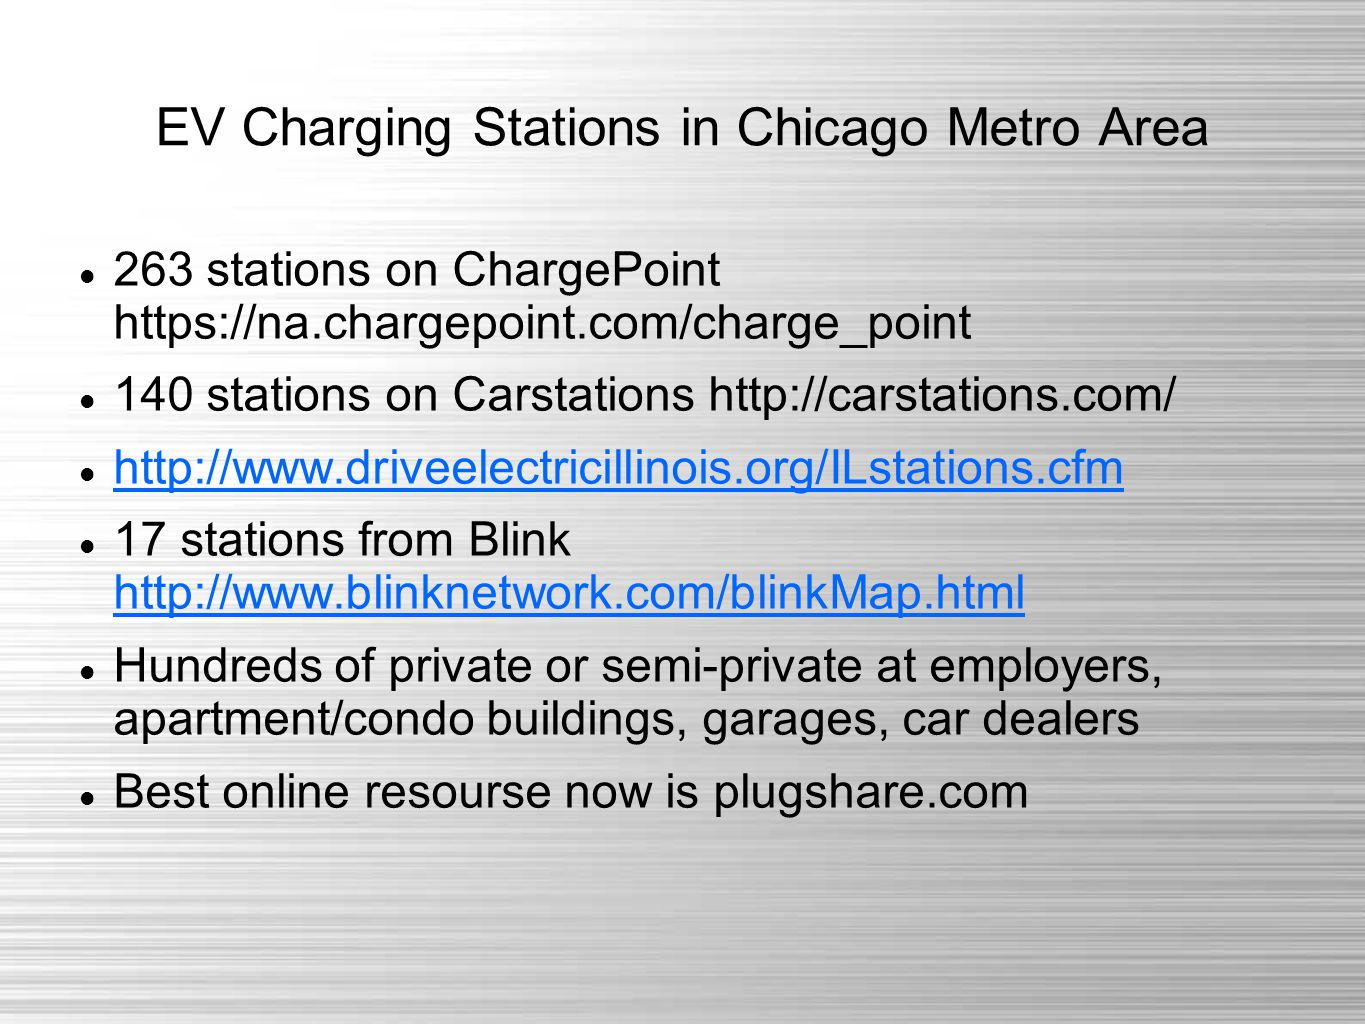 EV Charging Stations in Chicago Metro Area 263 stations on ChargePoint https://na.chargepoint.com/charge_point 140 stations on Carstations http://carstations.com/ http://www.driveelectricillinois.org/ILstations.cfm 17 stations from Blink http://www.blinknetwork.com/blinkMap.html http://www.blinknetwork.com/blinkMap.html Hundreds of private or semi-private at employers, apartment/condo buildings, garages, car dealers Best online resourse now is plugshare.com